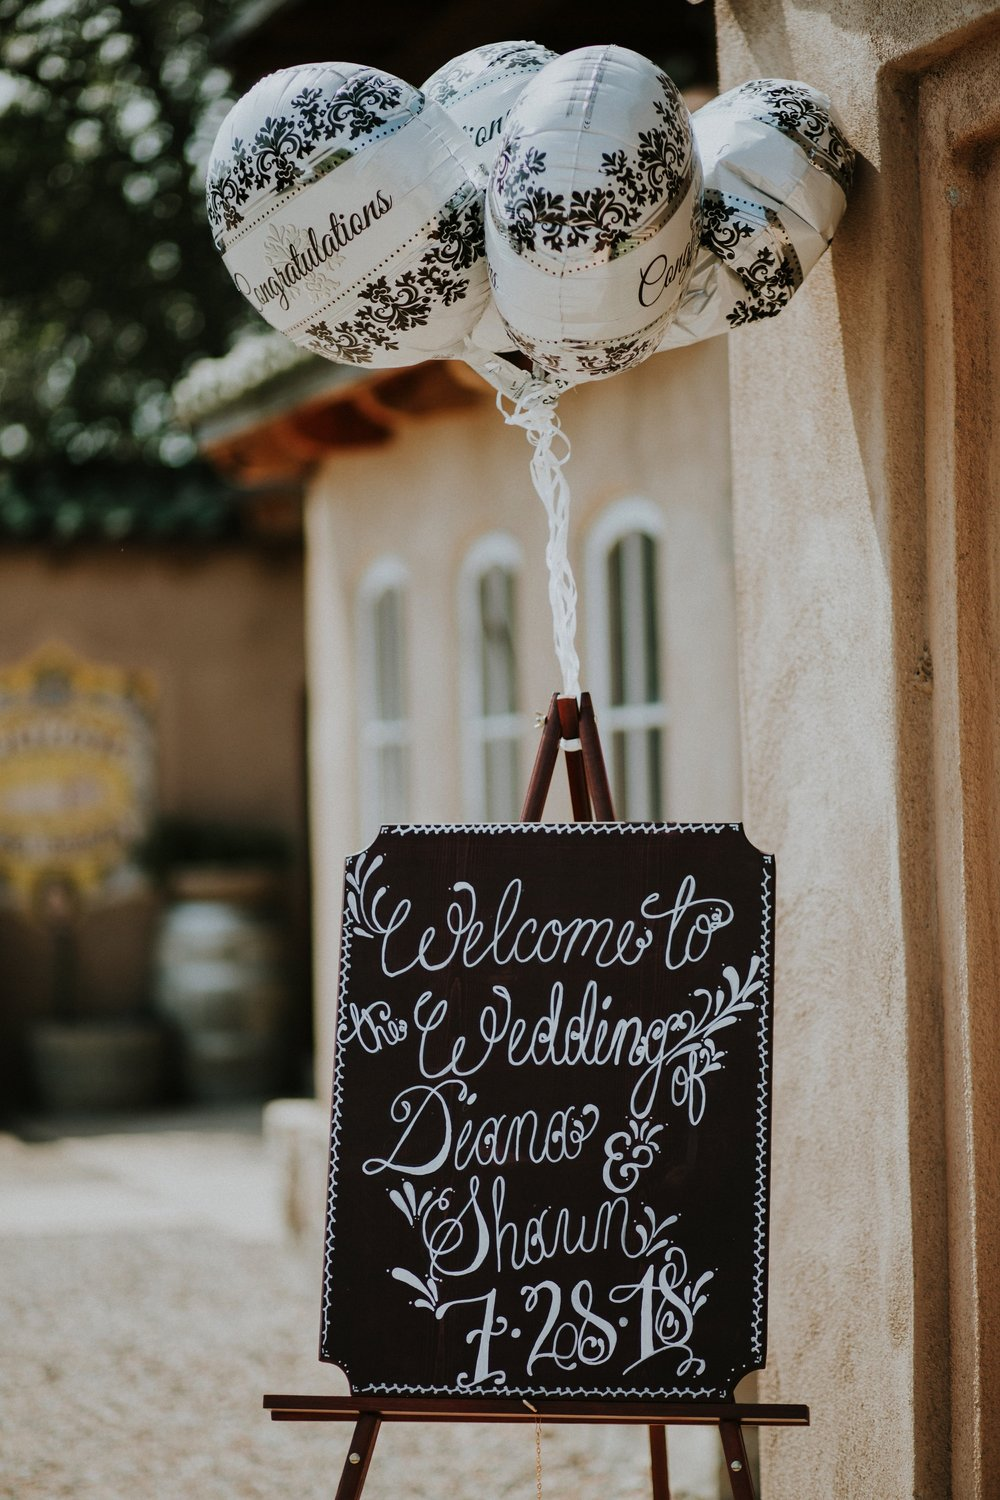 00000000000000038_casa-rondena-winery-wedding-photos_Cosner_Los-Ranchos-New-Mexico-Wedding-Photographer-27.jpg